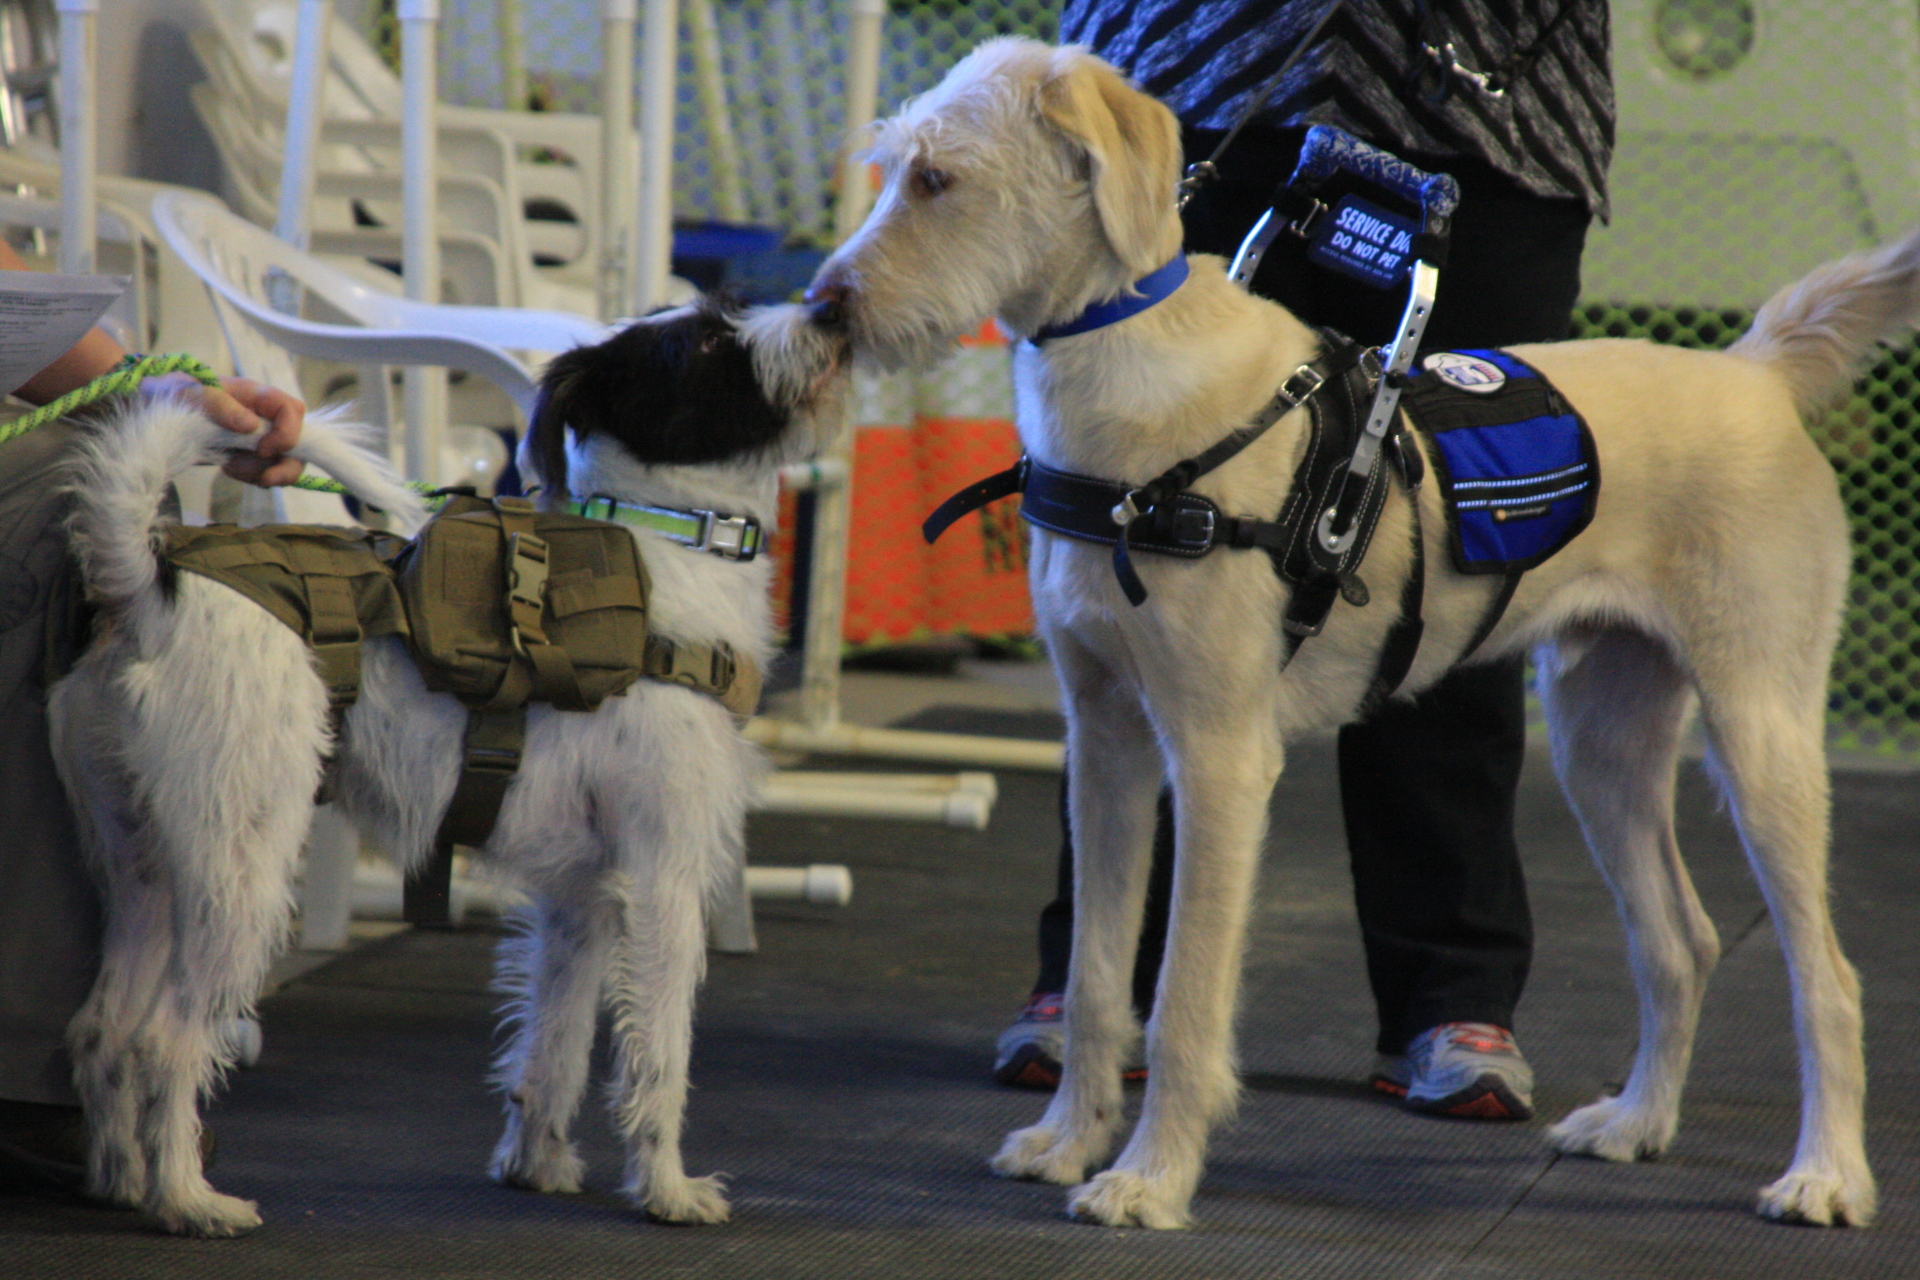 Murphy, an emotional support animal, and Leo, a service dog in training, greet each other